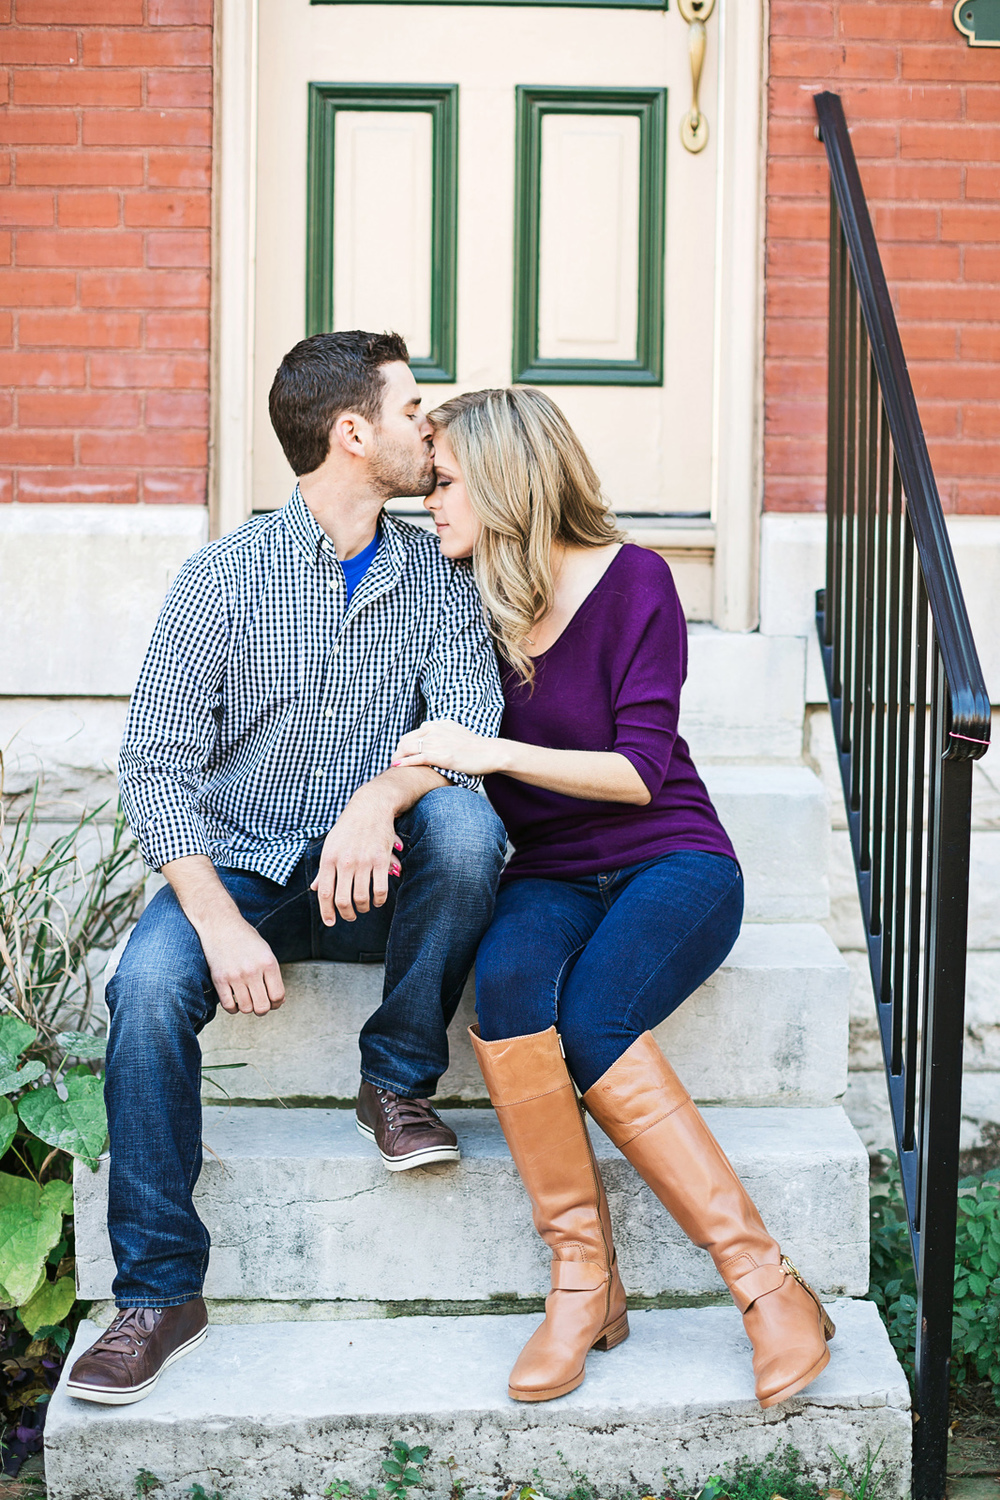 Oldani Photography St Louis Soulard Smile Engagement_20141101_125651-2.jpg